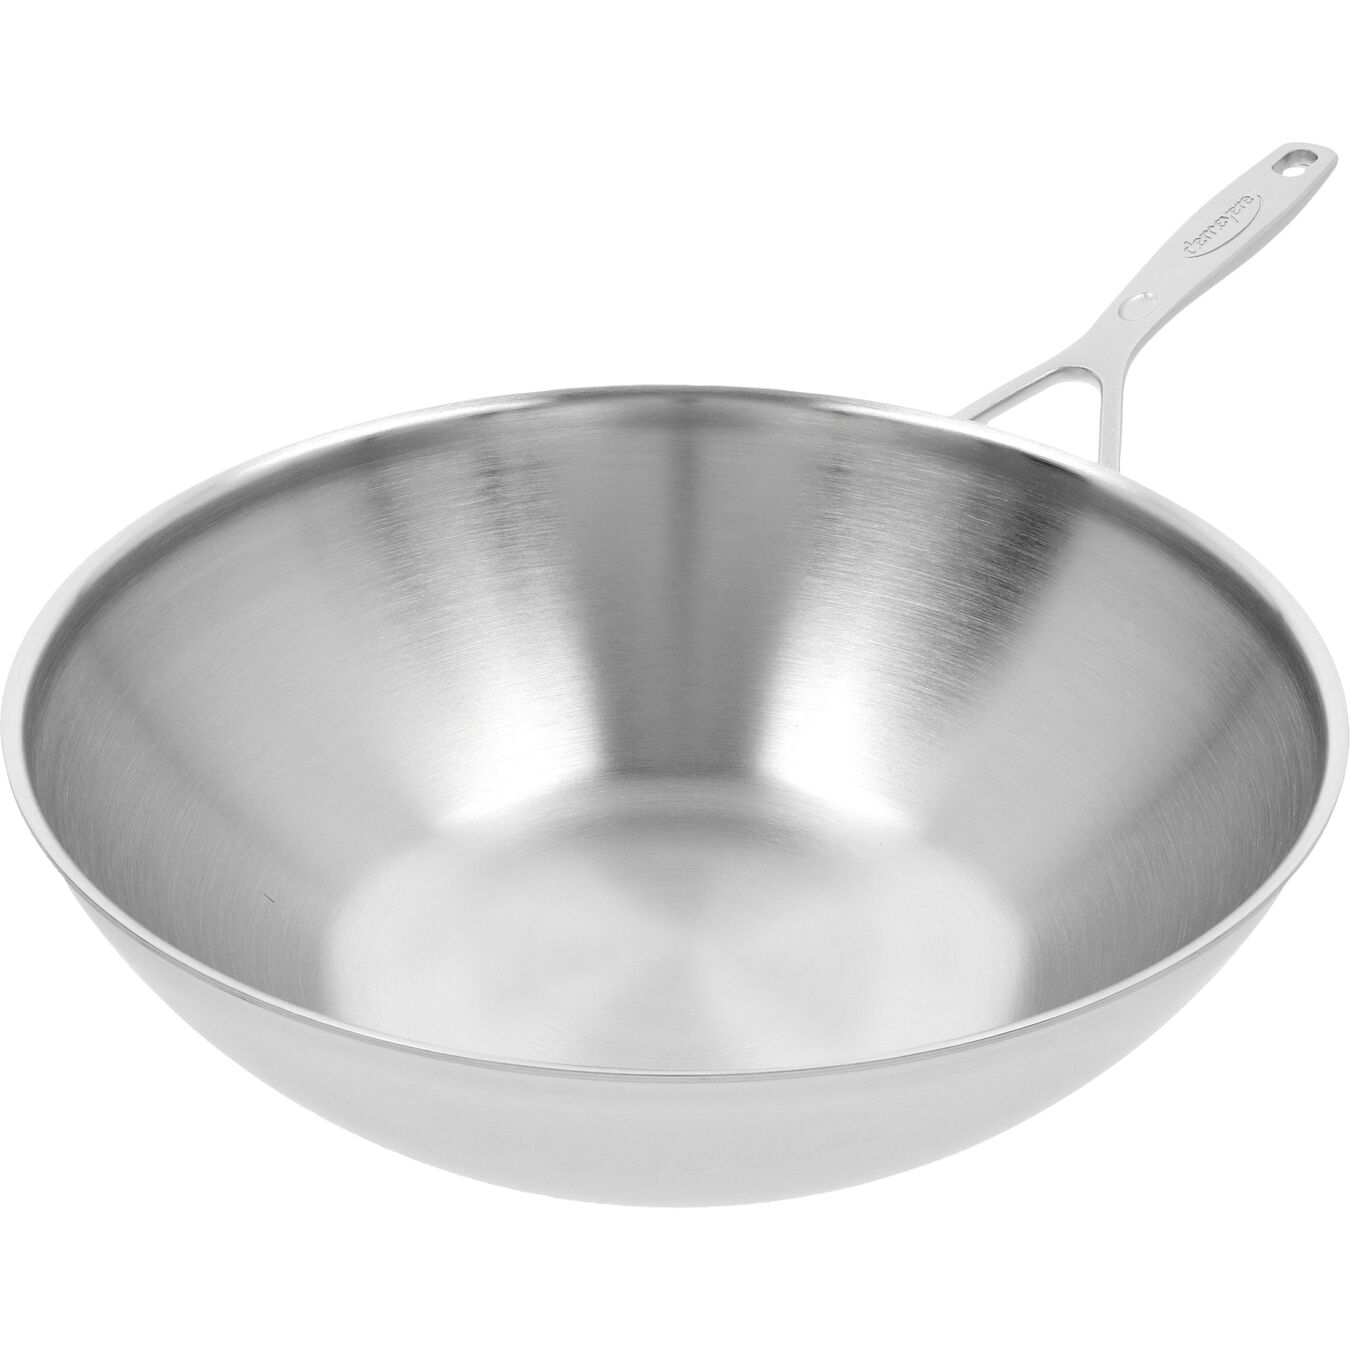 5 qt, 18/10 Stainless Steel, Flat Bottom Wok, silver,,large 4